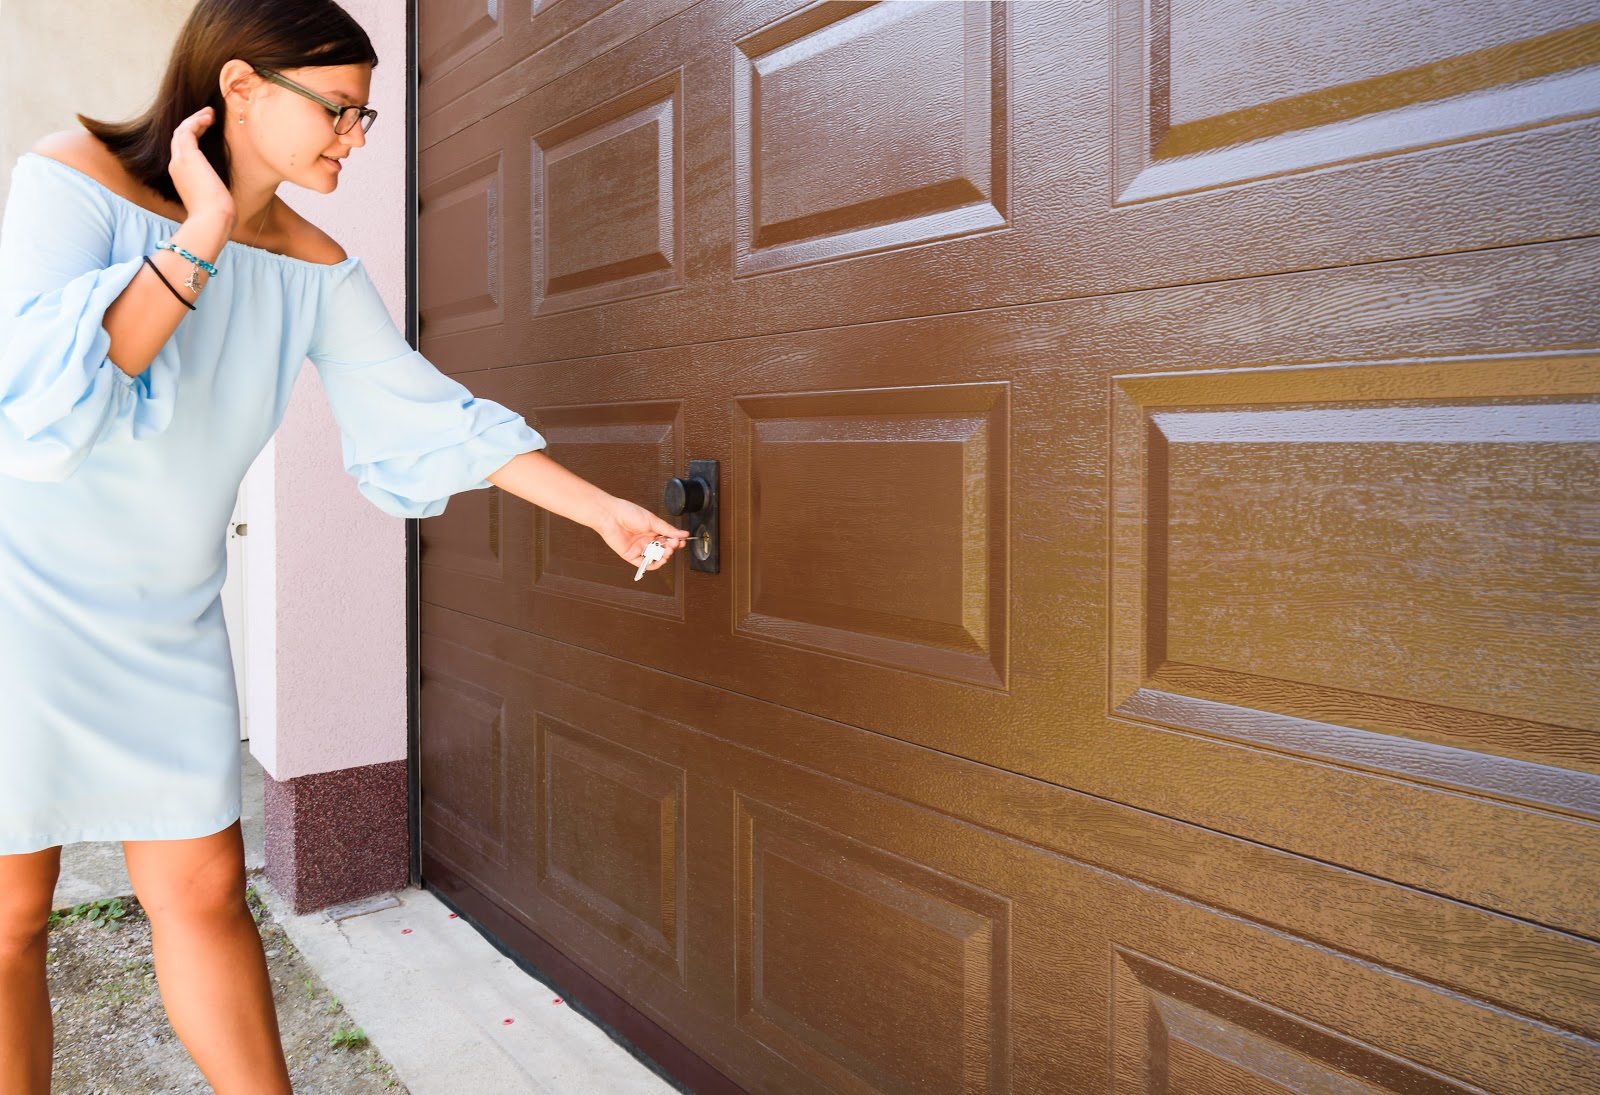 Woman-Using-Keys-to-get-into-locked-out-garage